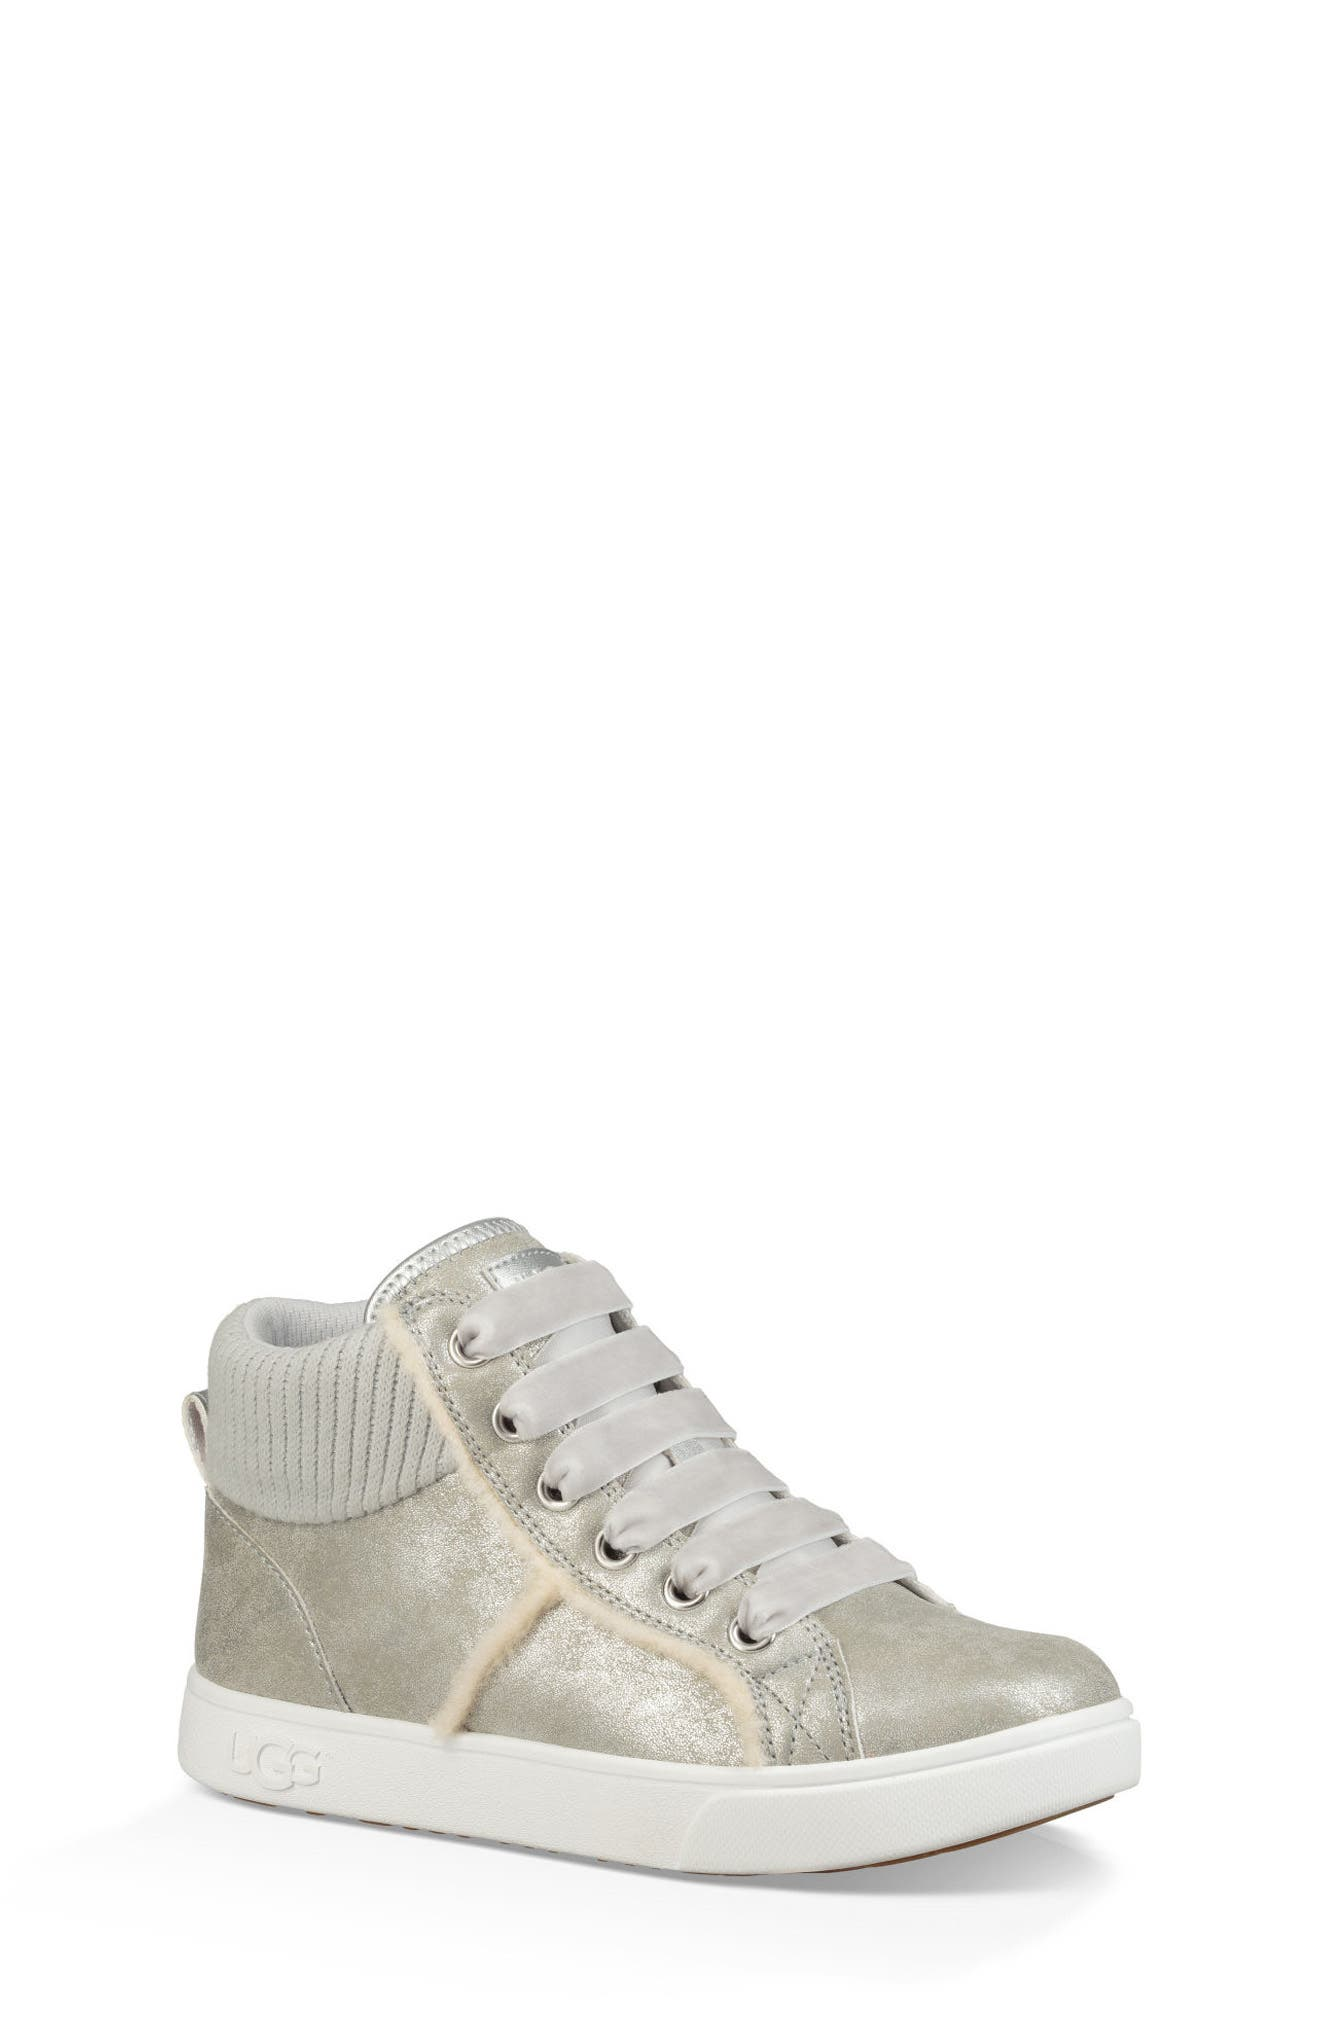 Addie High Top Sneaker,                         Main,                         color, SILVER